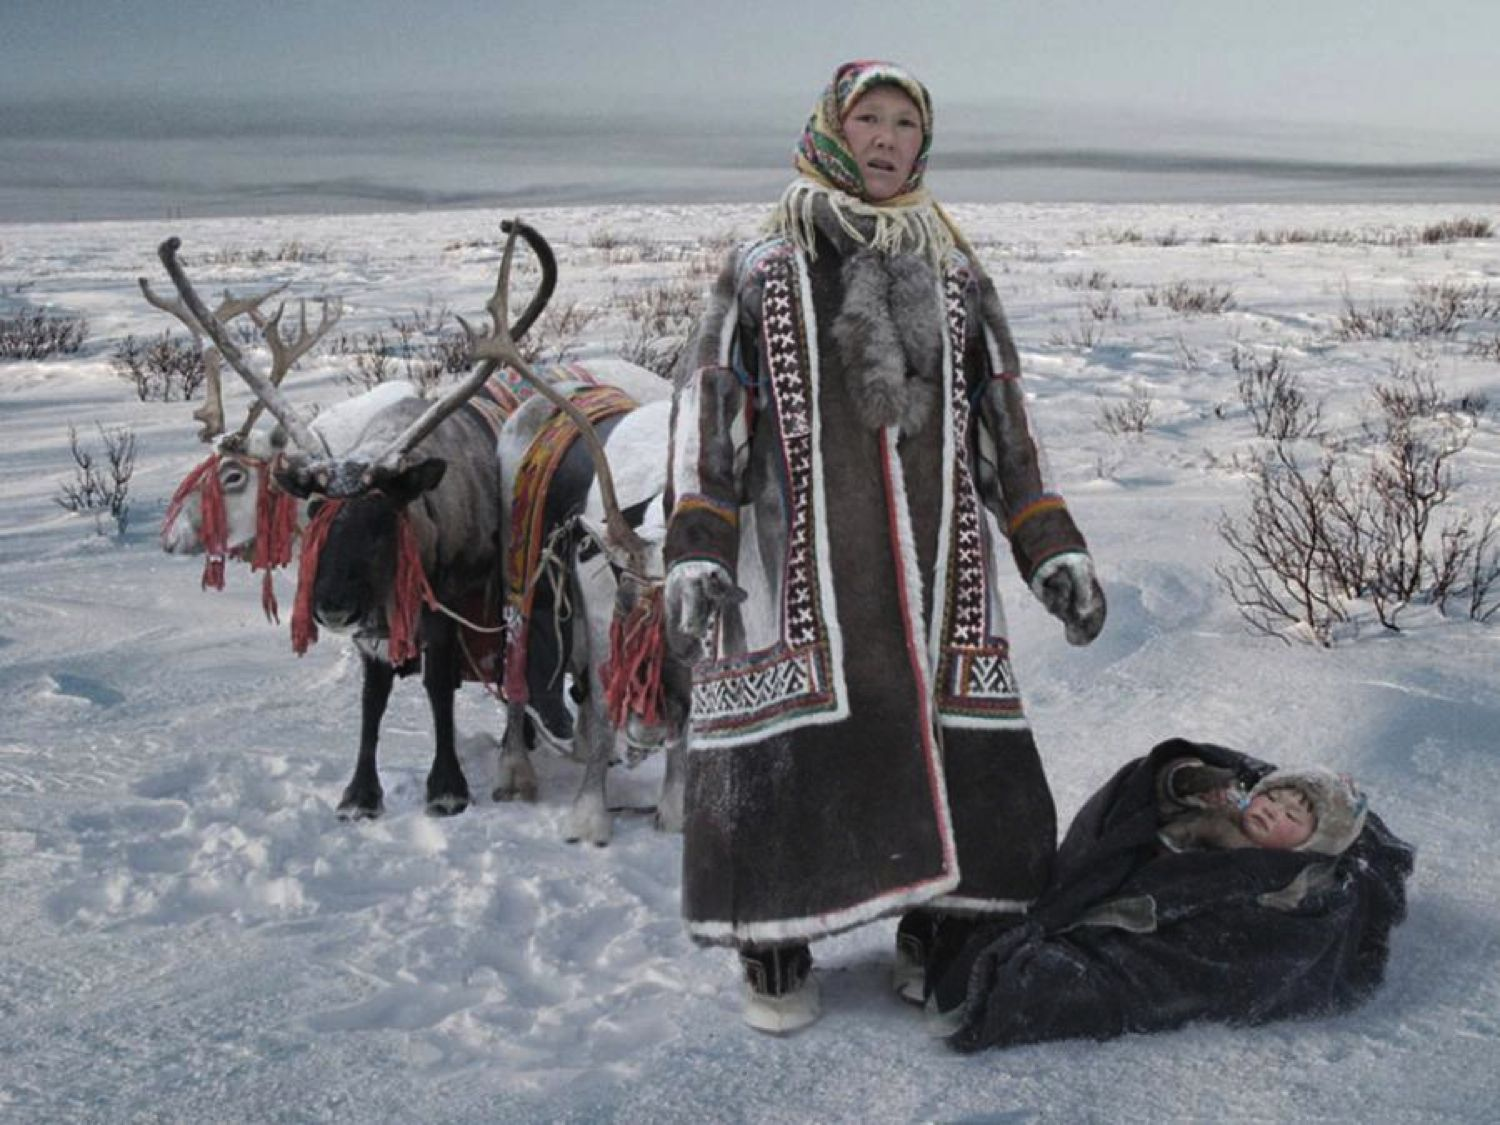 an overview of the peoples of alaska and their eskimo culture Alaska natives are indigenous peoples of alaska, united states and include: iñupiat, yupik, aleut, eyak, tlingit, haida, tsimshian, and a number of northern athabaskan cultures they are often defined by their language groups.